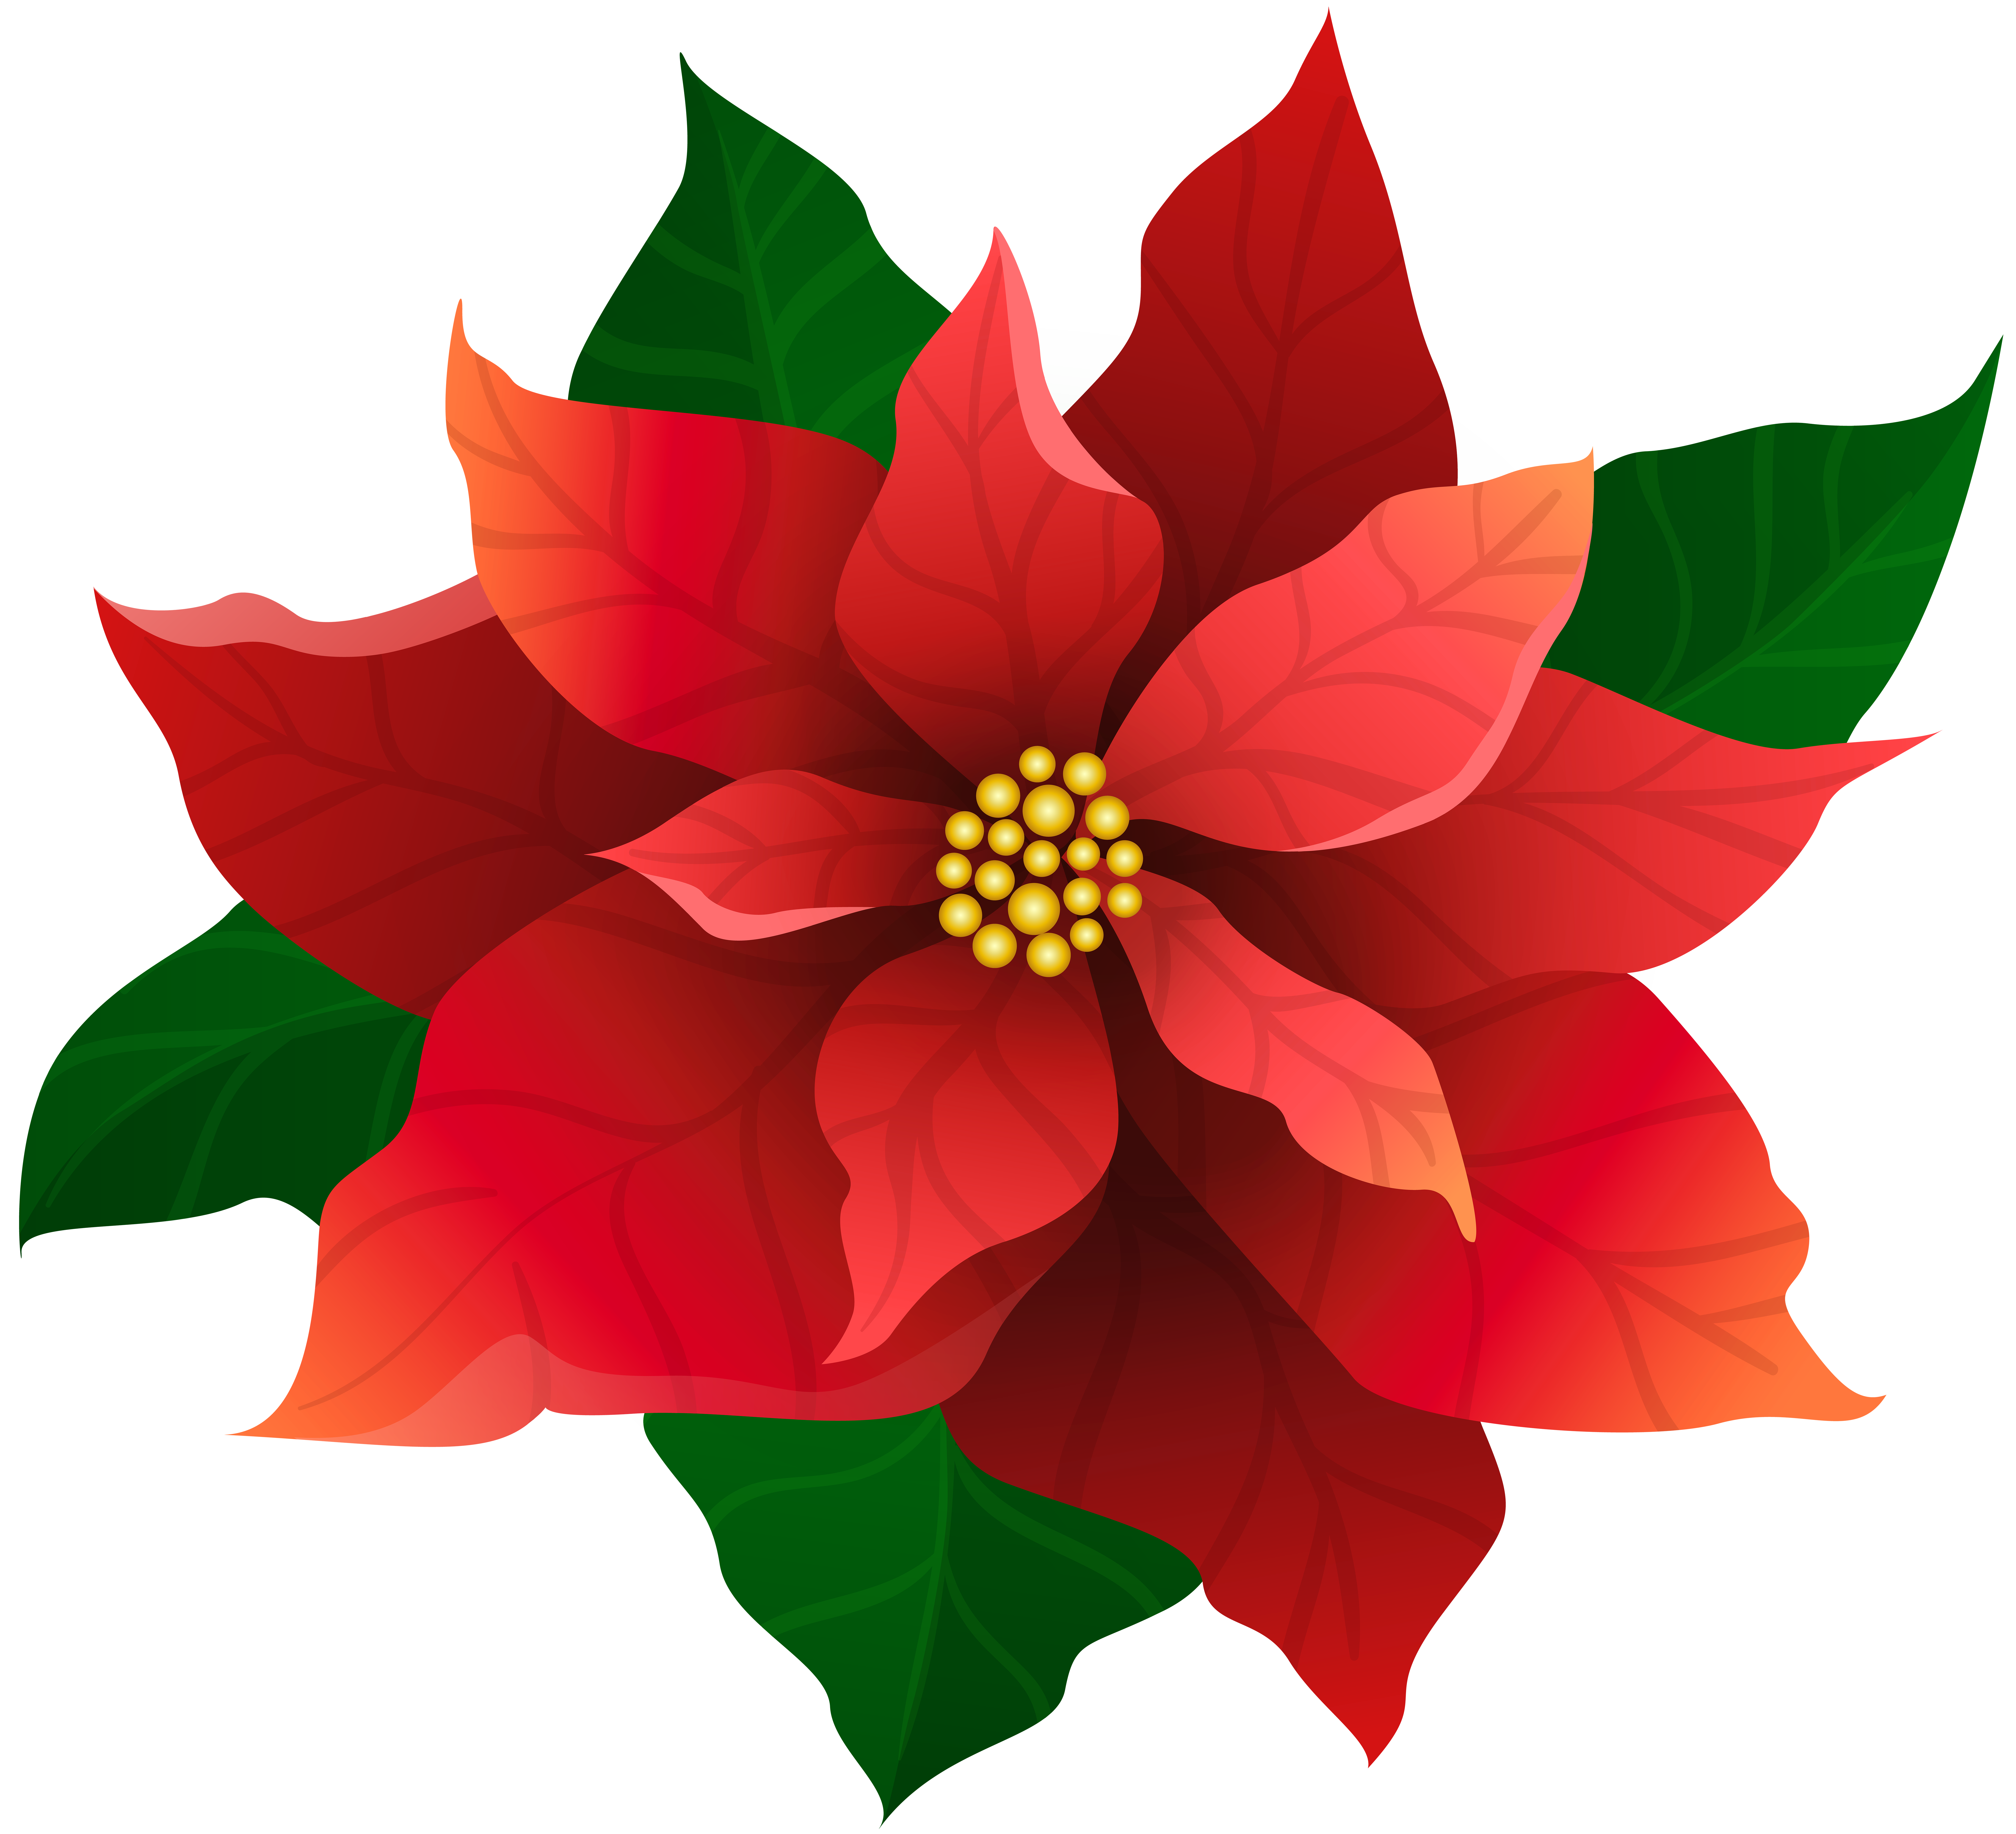 Christmas flower clipart jpg free stock Christmas Poinsettia Red Transparent Clip Art | Gallery ... jpg free stock